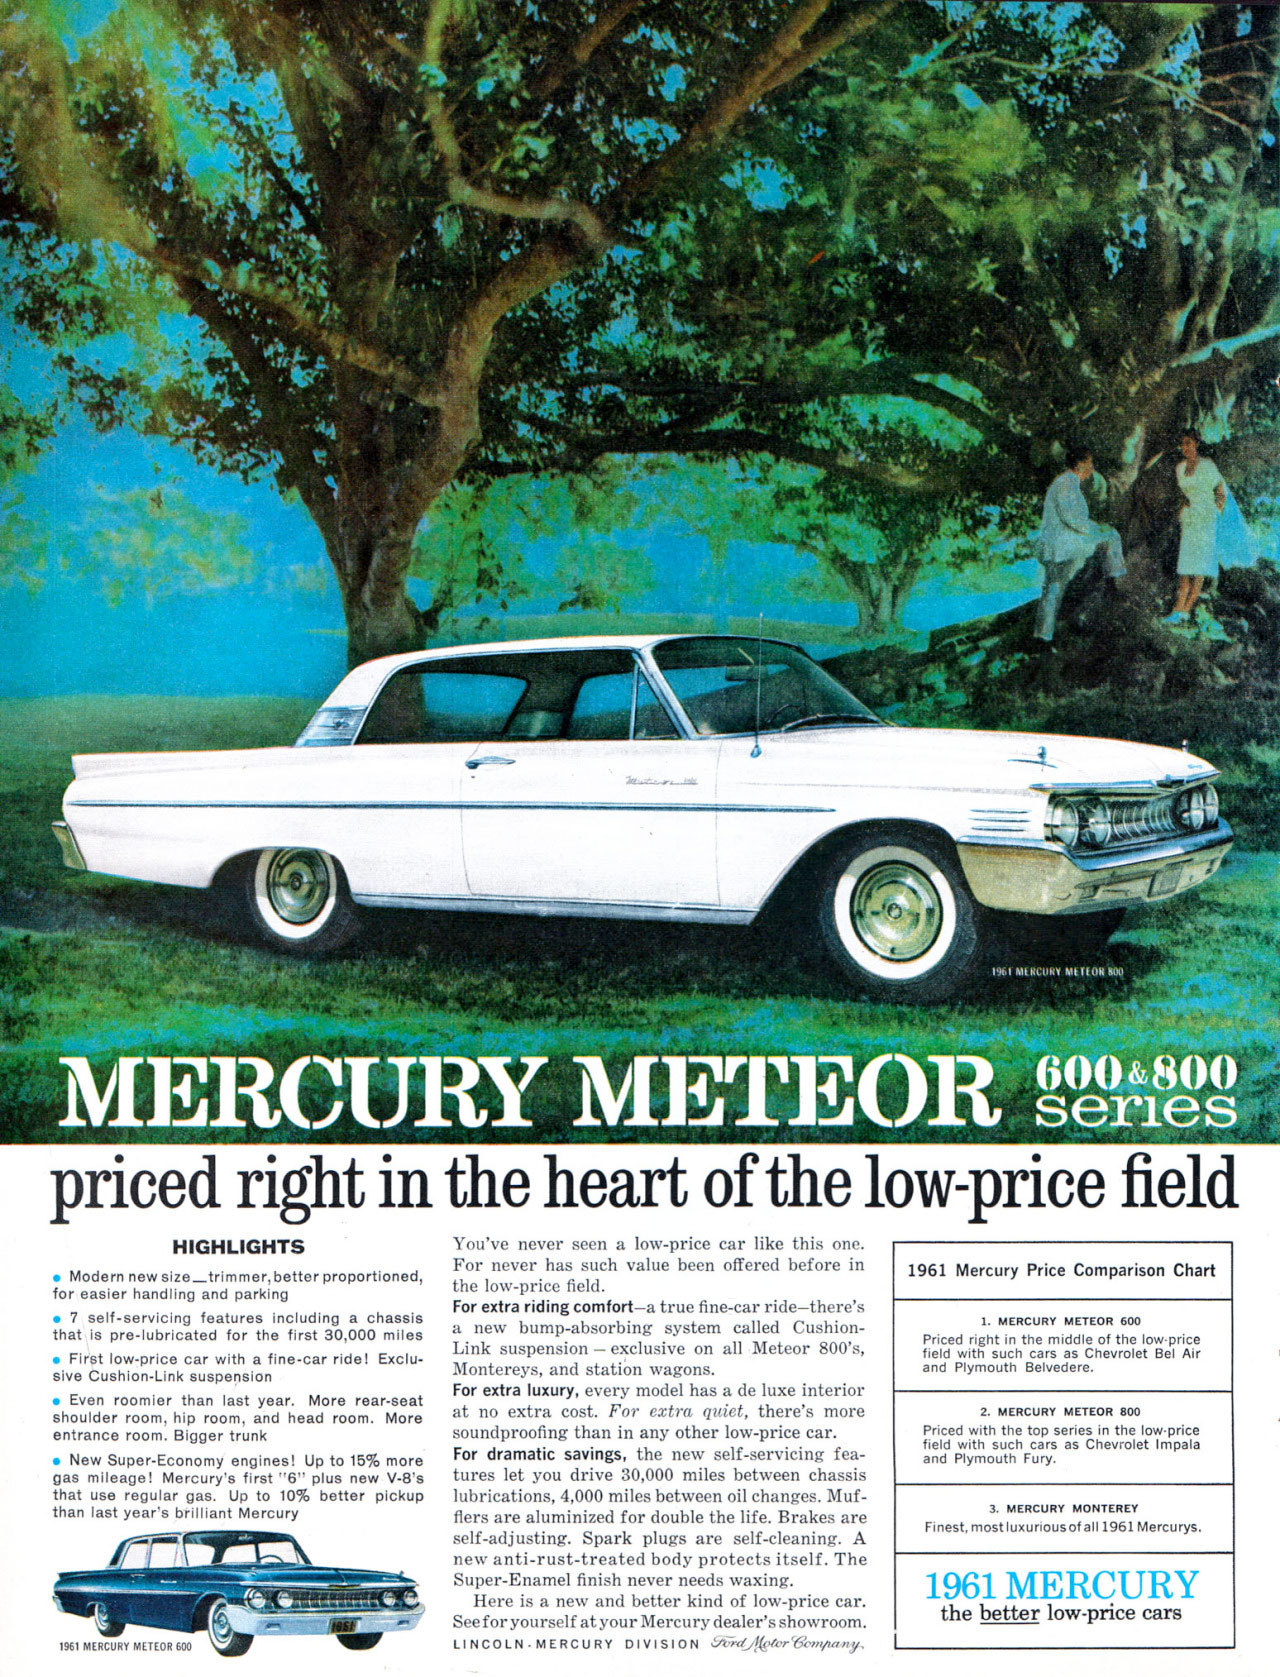 The Mercury Meteor 600 & 800 Series. Priced right in the heart of the low-price field. HIGHLIGHTS • Modern new size_trimmer, better proportioned, for easier handling and parking • 7 self-servicing features including a chassis that is pre-lubricated for the first 30,000 miles • First low-price car with a fine-car ride! Exclu-sive Cushion-Link suspension • Even roomier than last year. More rear-seat shoulder room, hip room, and head room. More entrance room. Bigger trunk • New Super-Economy engines! Up to 15% more gas mileage! Mercury's first ''6'' plus new V-8's that use regular gas. Up to 10% better pickup than last year's brilliant Mercury You've never seen a low-price car like this one. For never has such value been offered before in the low-price field. For extra riding comfort—a true fine-car ride—there's a new bump-absorbing system called Cushion-Link suspension — exclusive on all Meteor 800's, Montereys, and station wagons. For extra luxury, every model has a de luxe interior at no extra cost. For extra quiet, there's more soundproofing than in any other low-price car. For dramatic savings, the new self-servicing fea-tures let you drive 30,000 miles between chassis lubrications, 4,000 miles between oil changes. Muf-flers are aluminized for double the life. Brakes are self-adjusting. Spark plugs are self-cleaning. A new anti-rust-treated body protects itself. The Super-Enamel finish never needs waxing. Here is a new and better kind of low-price car. See for yourself at your Mercury dealer's shovvroom. LINCOLN•NIERCURY DIVISION Ut-id_jggter-Verryzany, 1961 Mercury Price Comparison Chart 1. MERCURY METEOR 600 Priced right in the middle of the low.eprice fielicld Fr;irnosuuthih Iii:Irvsegrh''r*I'' B 1 A r 2. MERCURY METEOR 800 Priced with the top series in the low.price field with such cars as Chevrolet Impala and Plymouth Fury. 3. MERCURY MONTEREY Finest, most luxunousof al11961Mercurys. 1961 MERCURY the better low-price cars